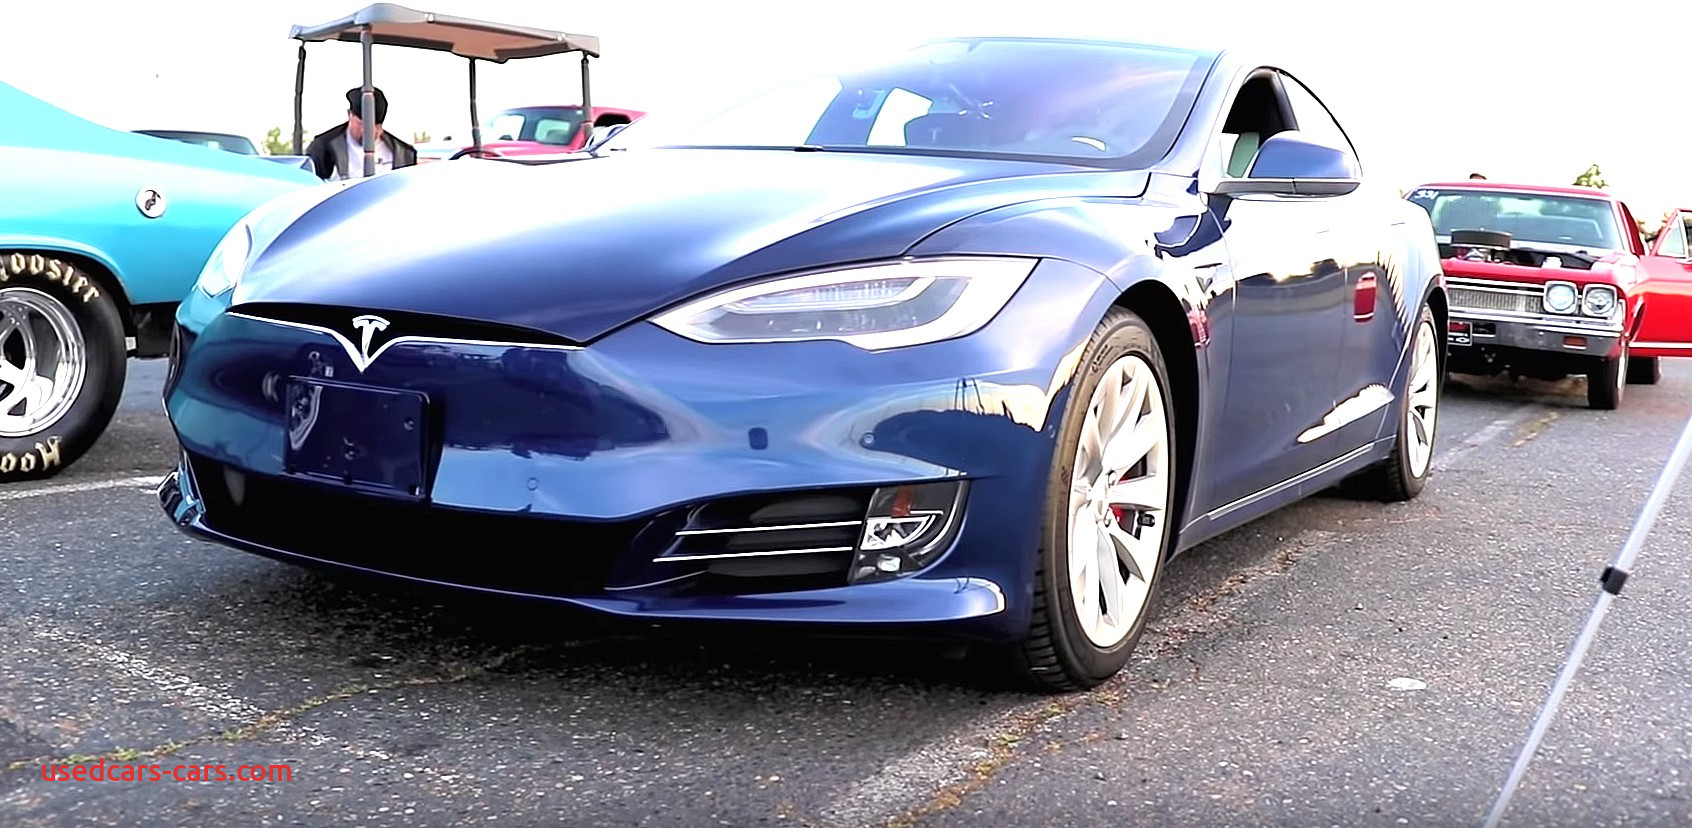 Tesla 1/4 Mile New Refreshed Tesla Model S Performance Sets 1 4 Mile Record